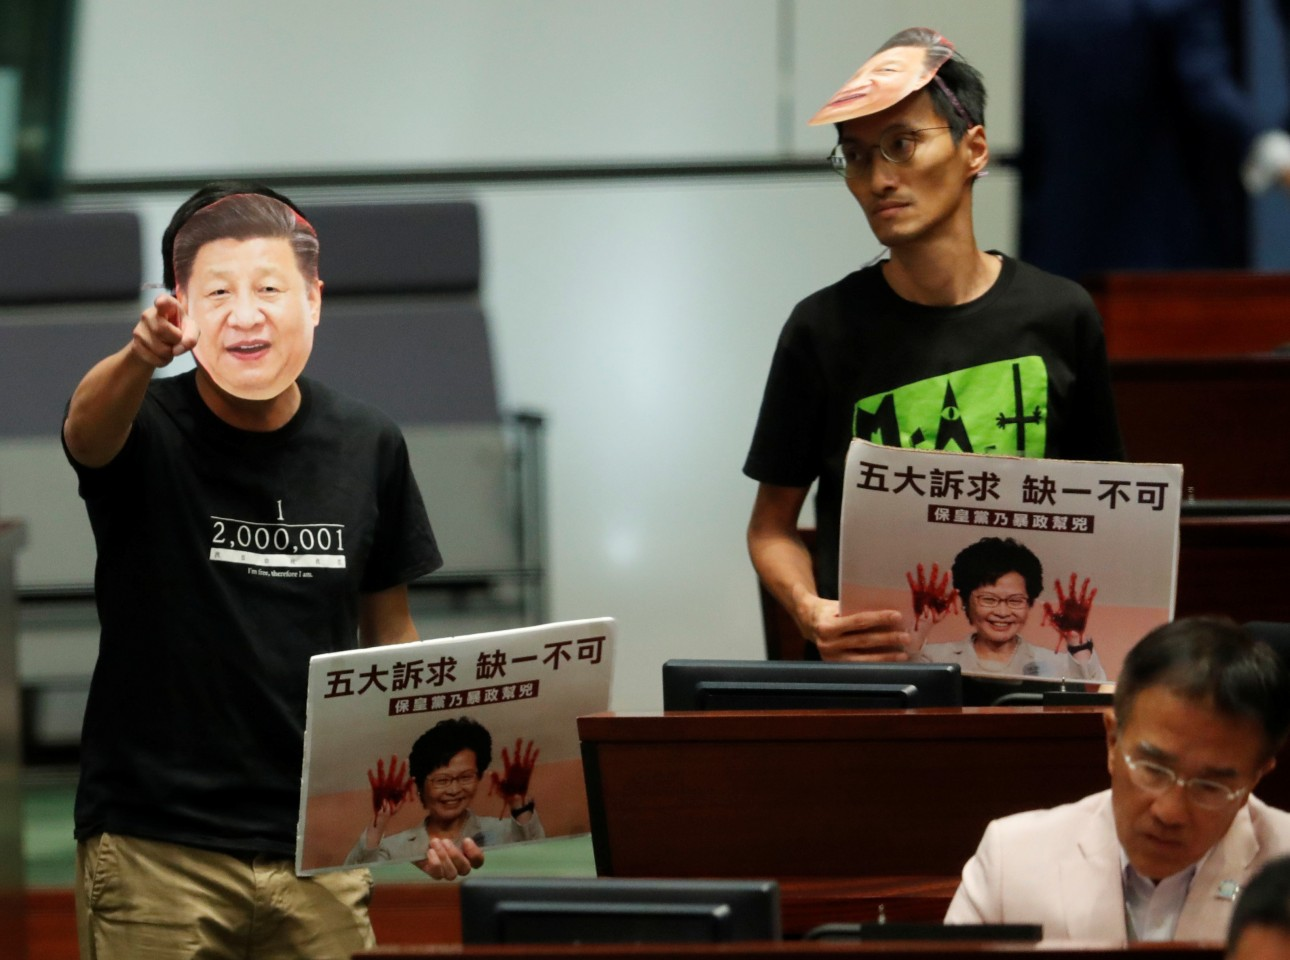 The impression that the Hong Kongers have of the central government and the mainland is directly related to the LOCPG's work. In the photo, a lawmaker in a mask depicting Chinese President Xi Jinping protests as Hong Kong Chief Executive Carrie Lam attempts to deliver her annual policy address at the Legislative Council in Hong Kong on October 16, 2019. (Kim Kyung-Hoon/Reuters)